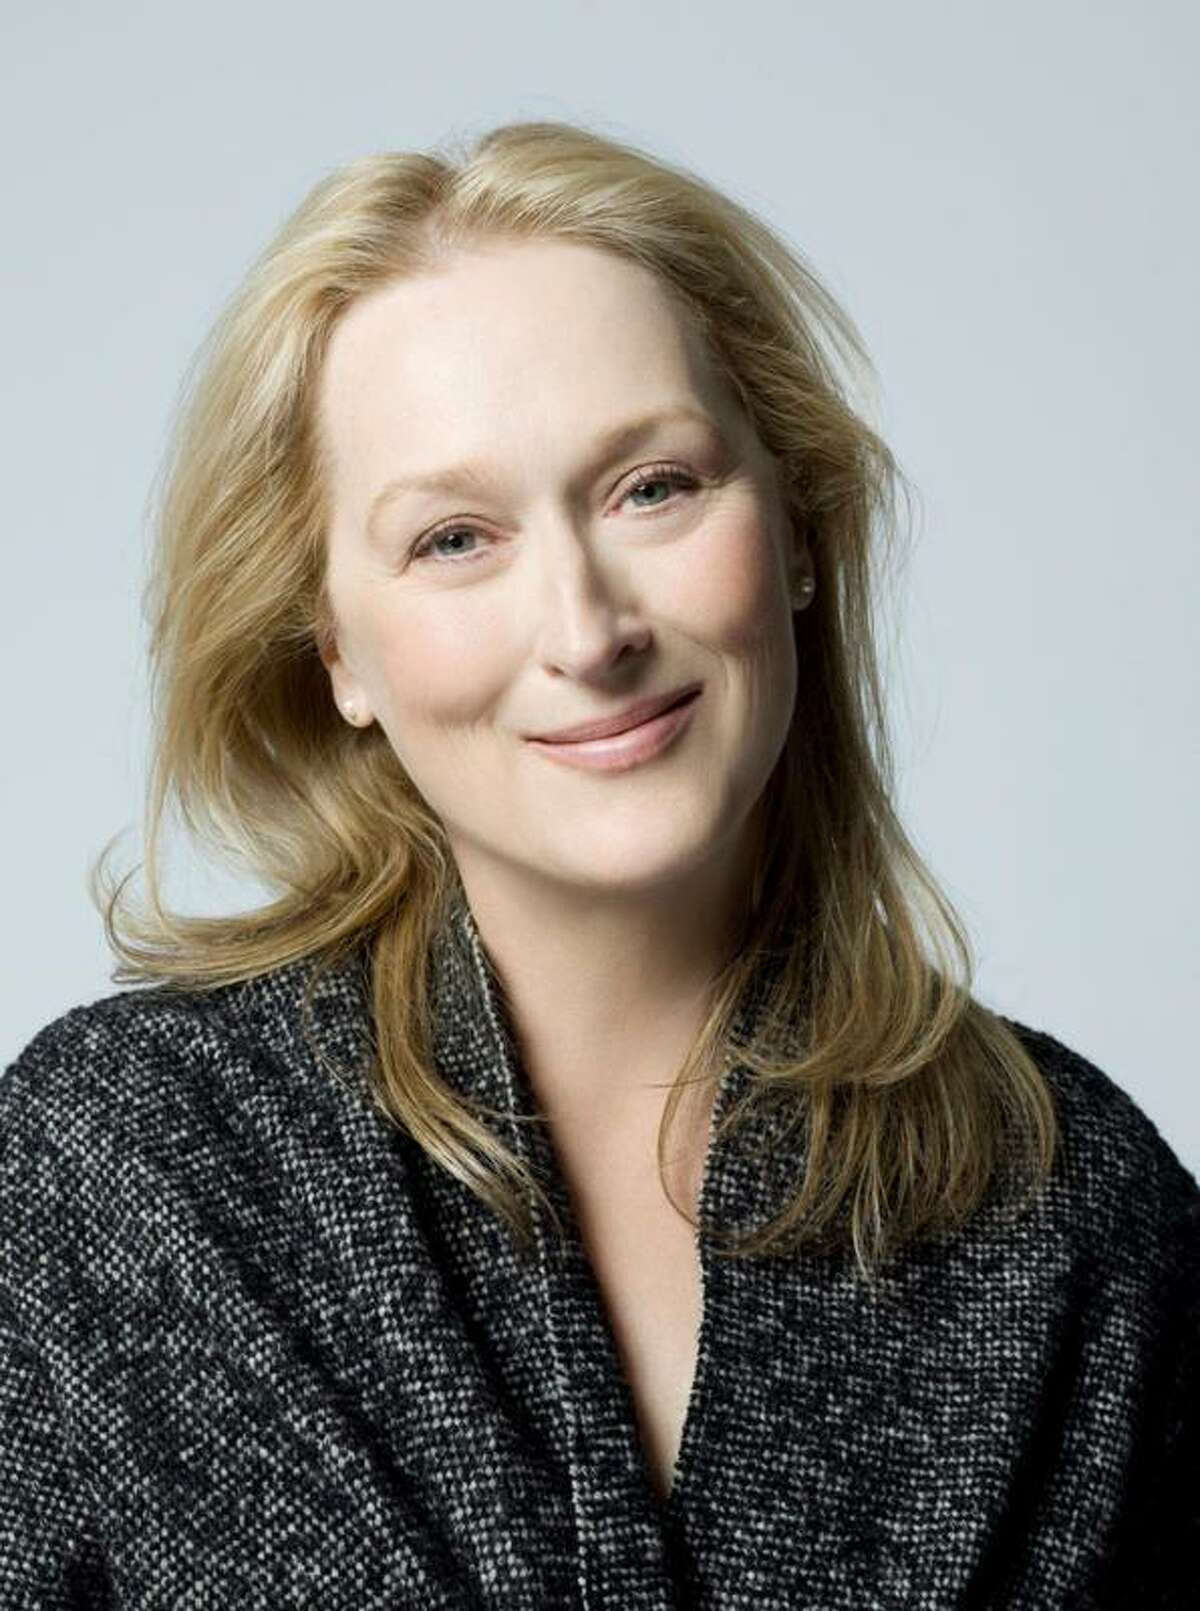 Actress Meryl Streep, who has a home in Litchfield County, will speak in the Kent Memorial Library's spring lecture series. Photo courtesy of the library.